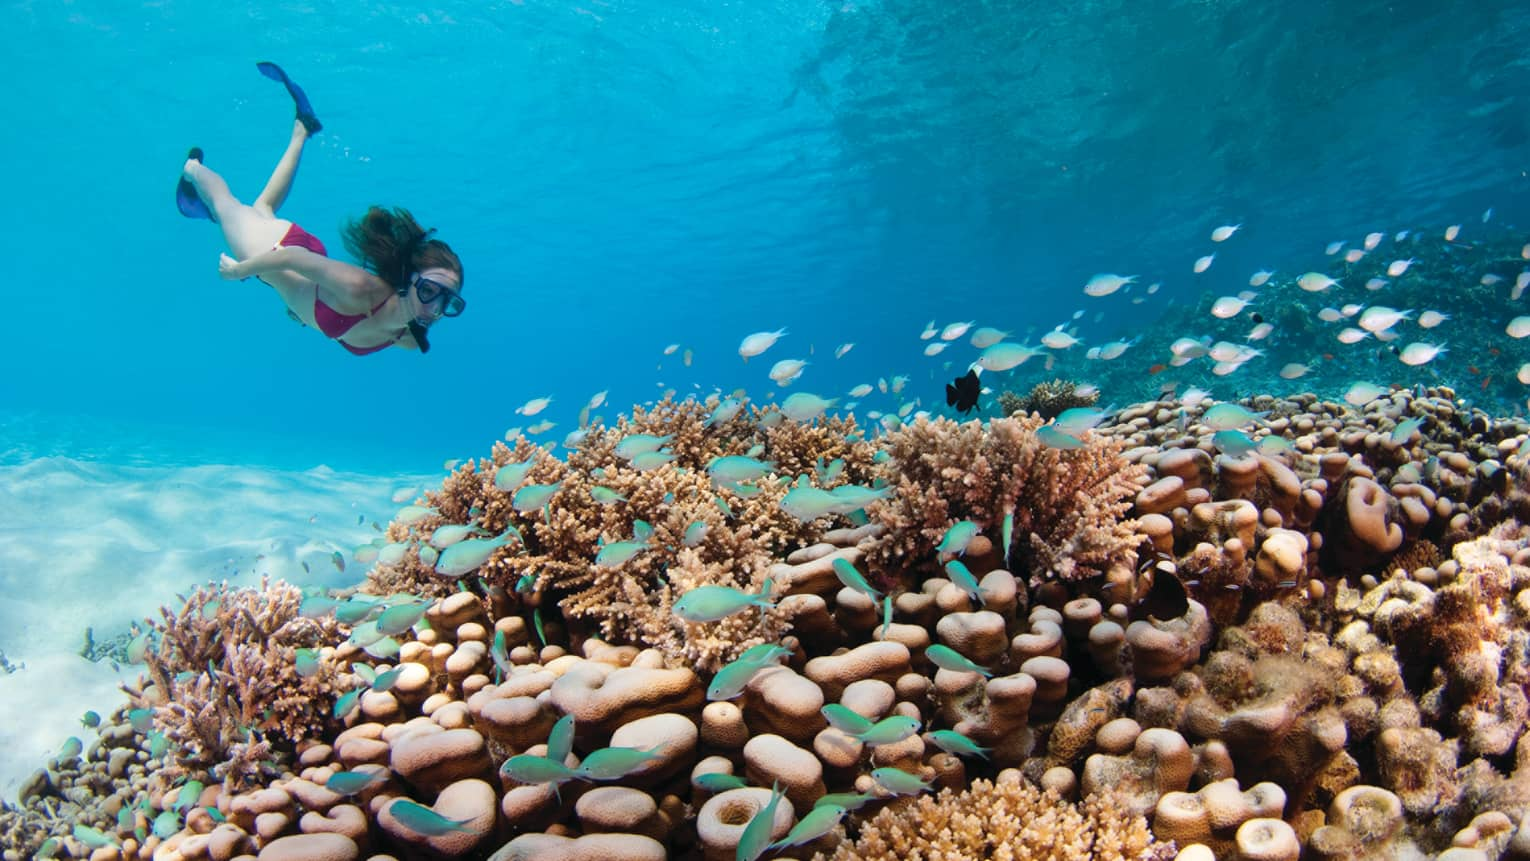 Snorkeller swims underwater towards colourful coral reef, blue tropical fish